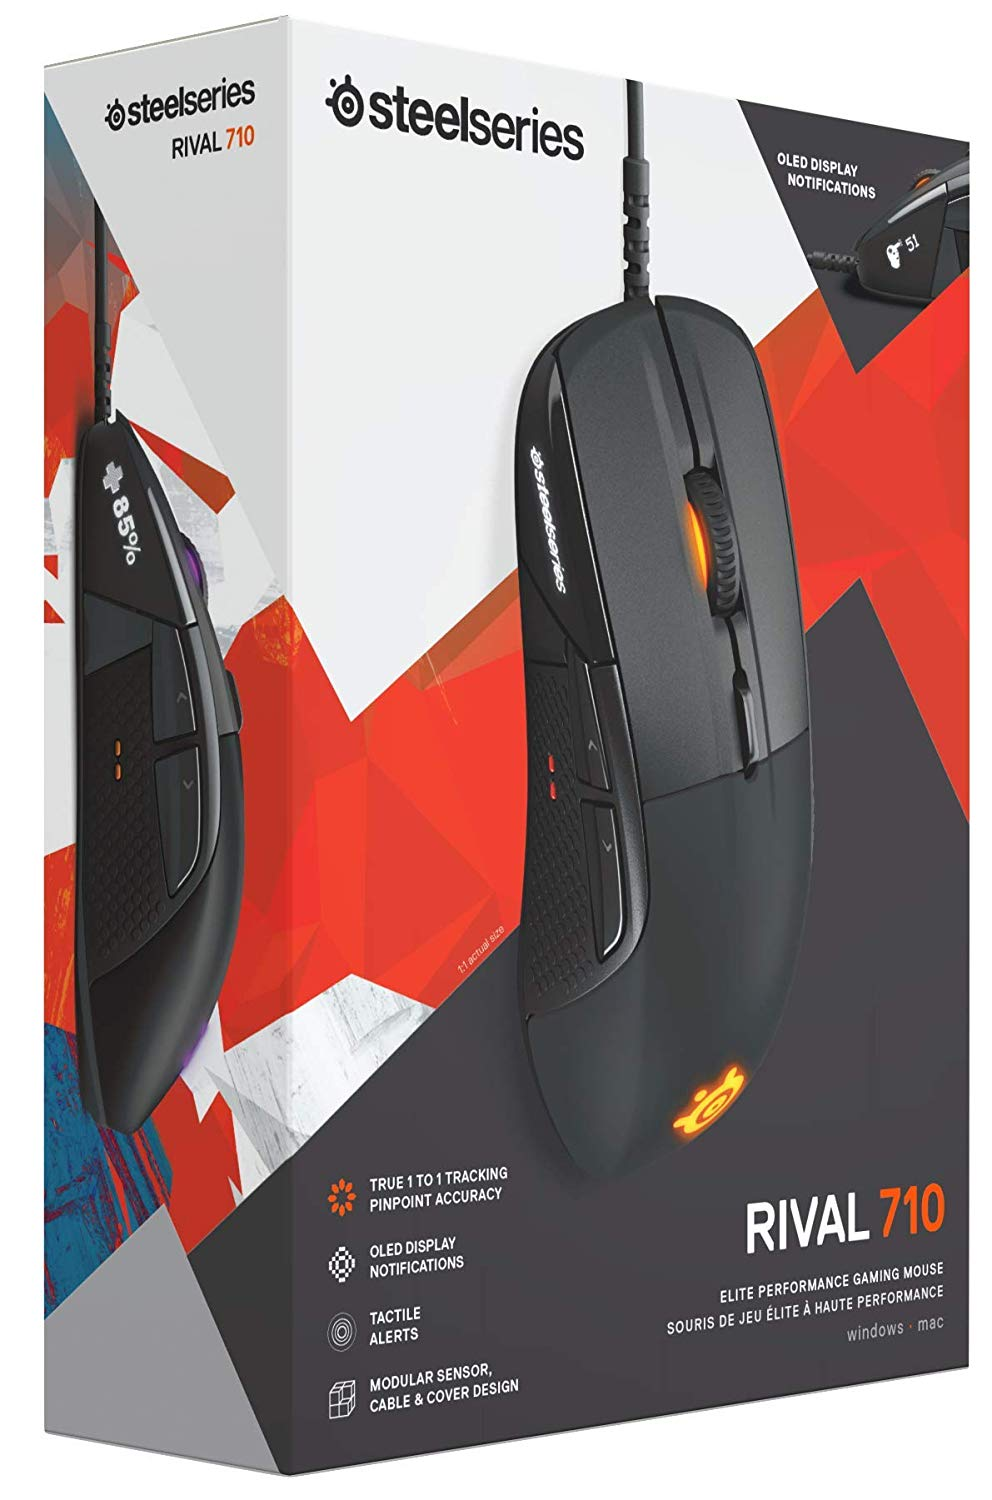 SteelSeries Rival 710 Gaming Maus 16 000 CPI TrueMove3 Optical Sensor OLED Display haptisches Feedback RGB